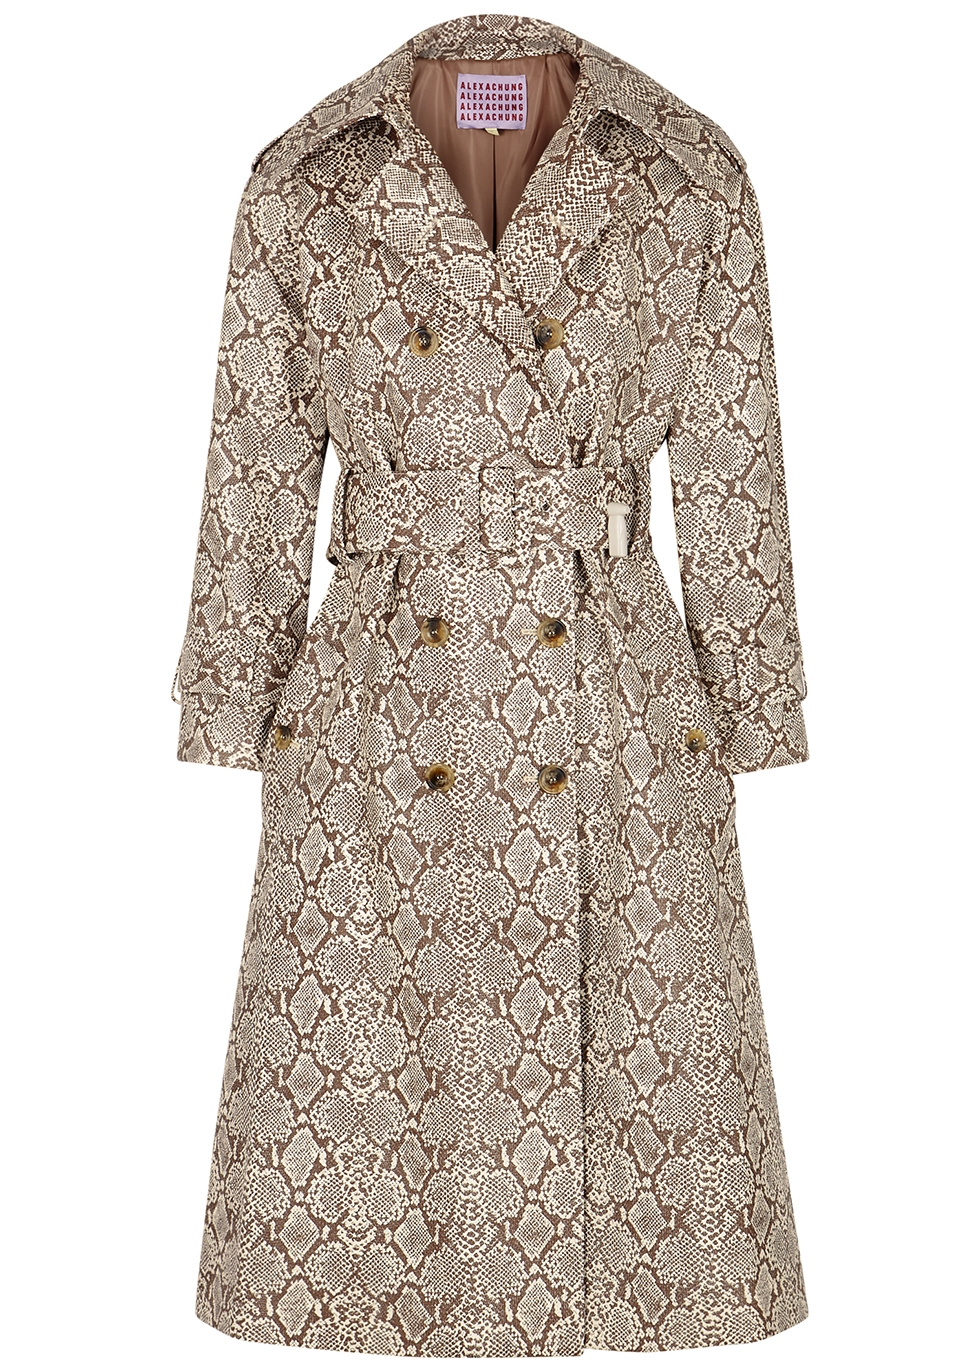 9c1fa6dad Designer Coats - Women's Winter Coats - Harvey Nichols